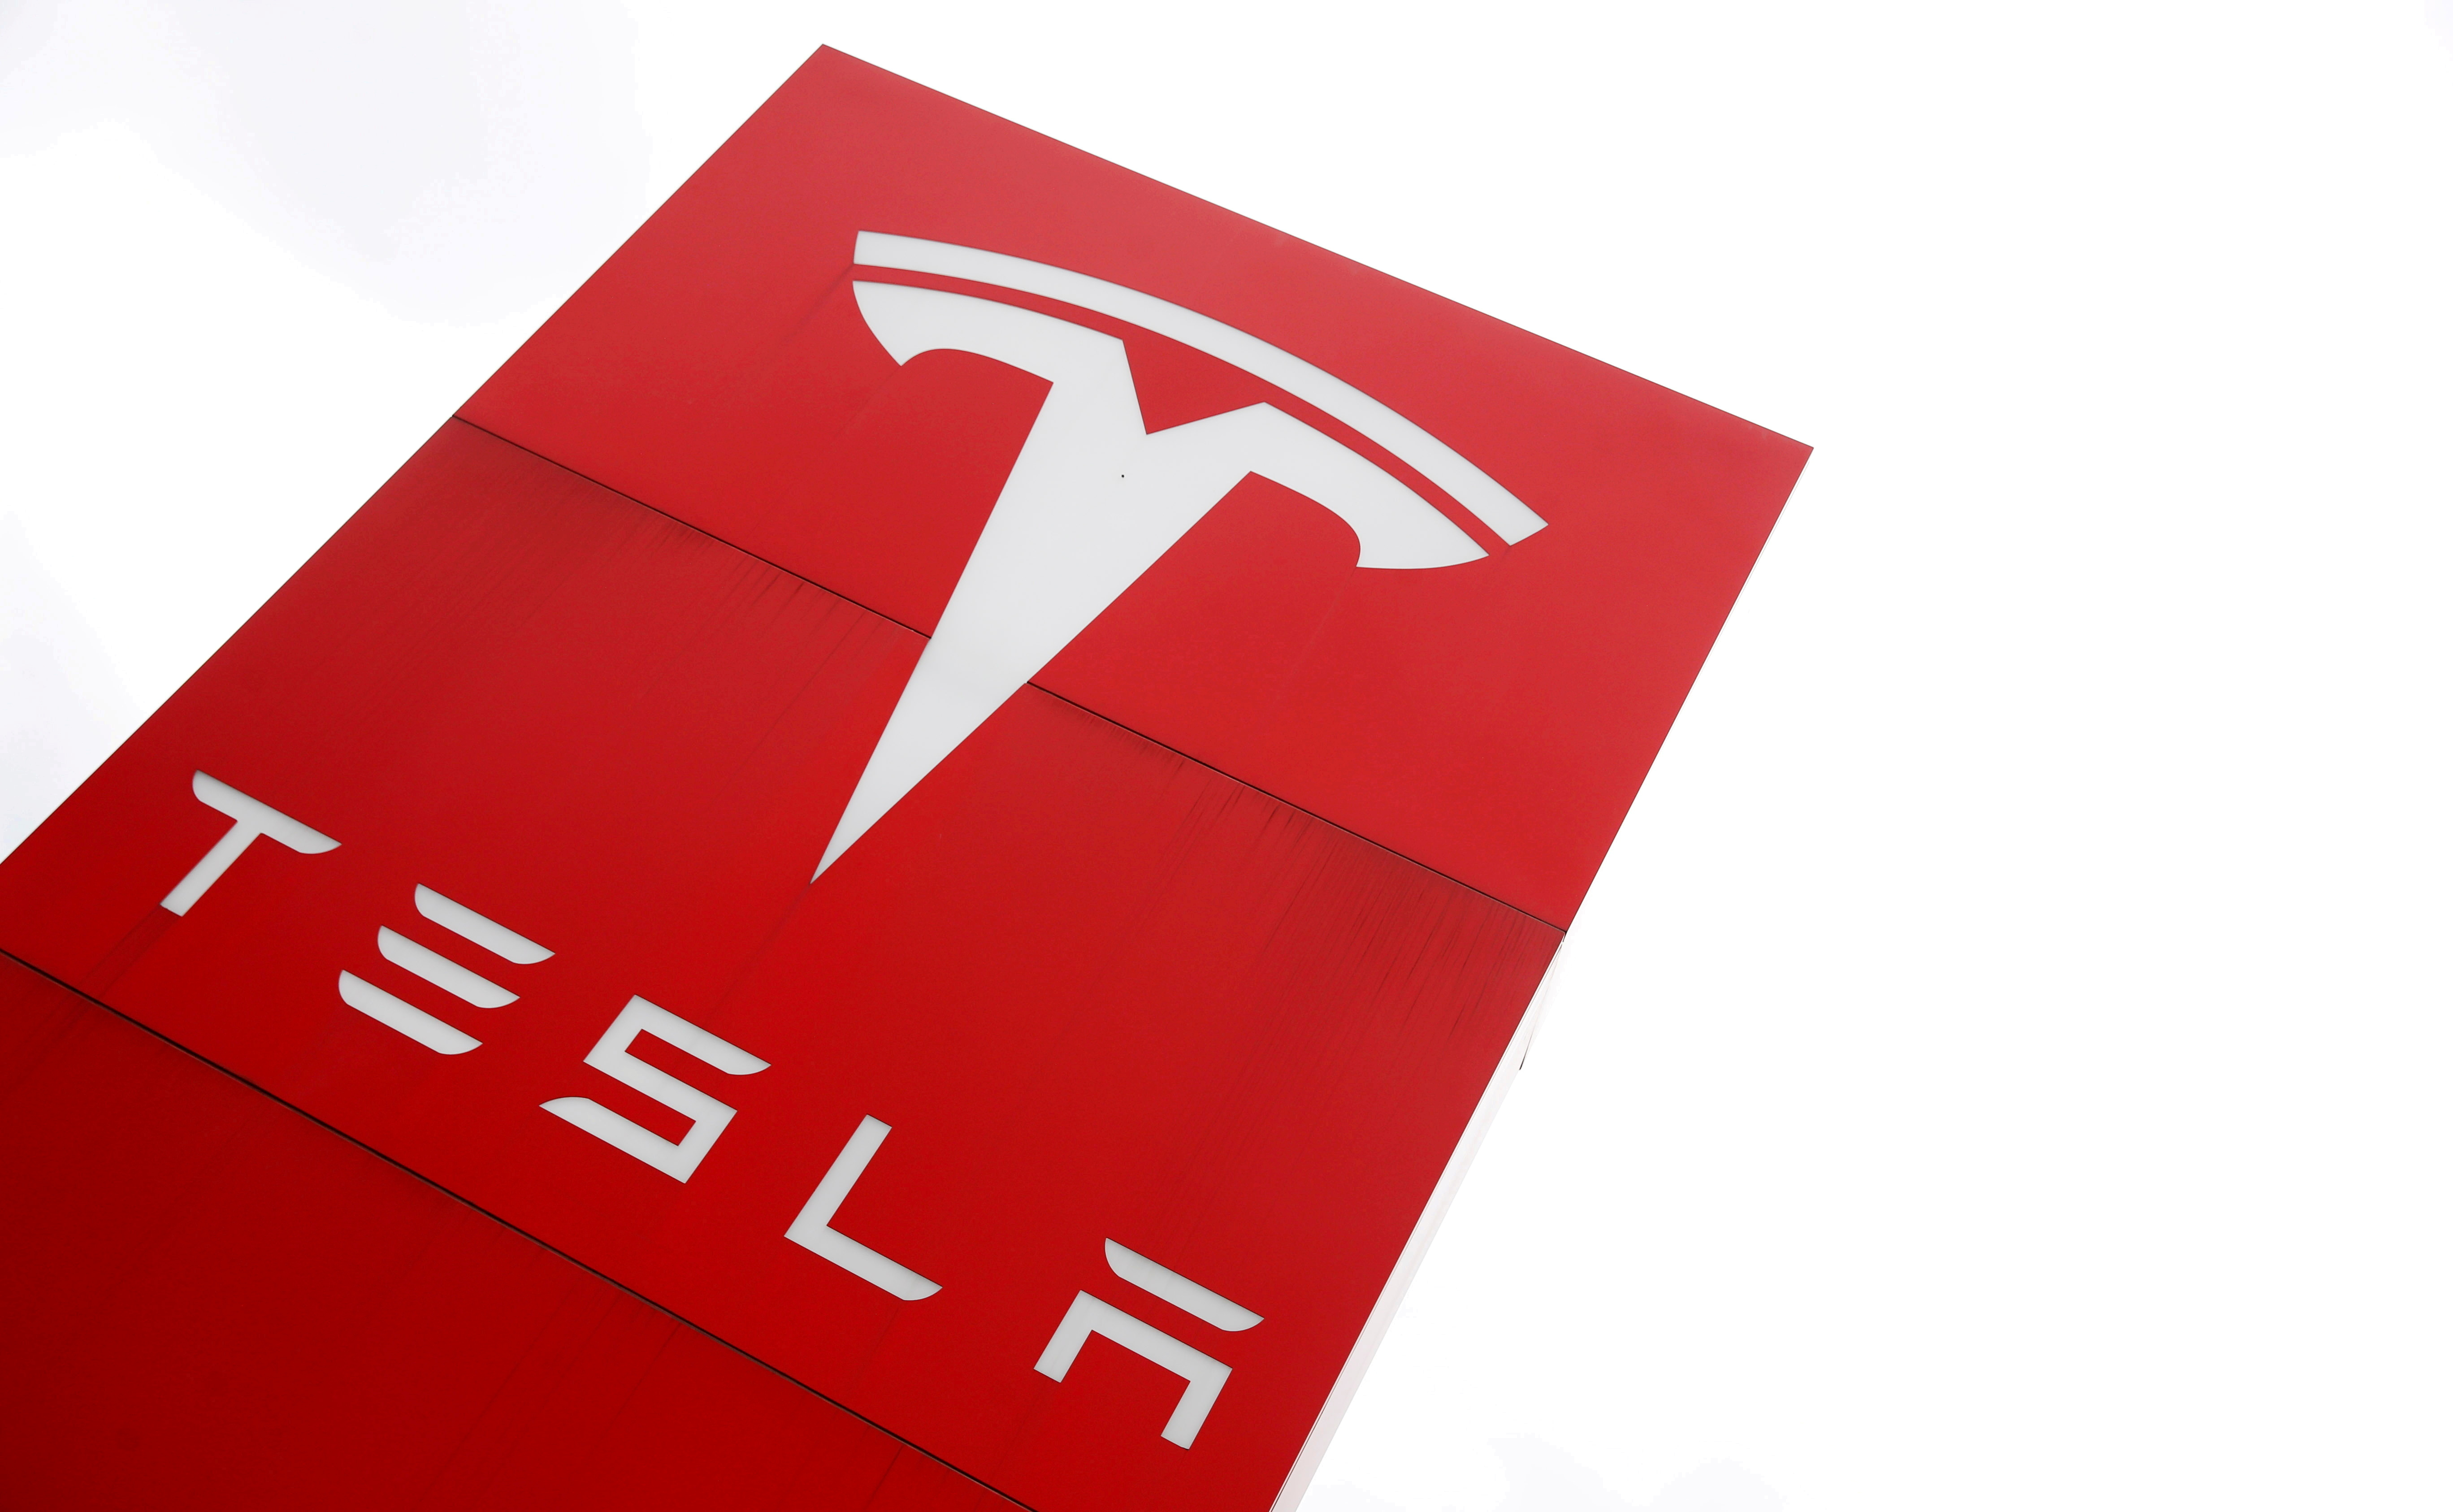 FILE PHOTO: The logo of car manufacturer Tesla is seen at a dealership in London, Britain, May 14, 2021. REUTERS/Matthew Childs/File Photo